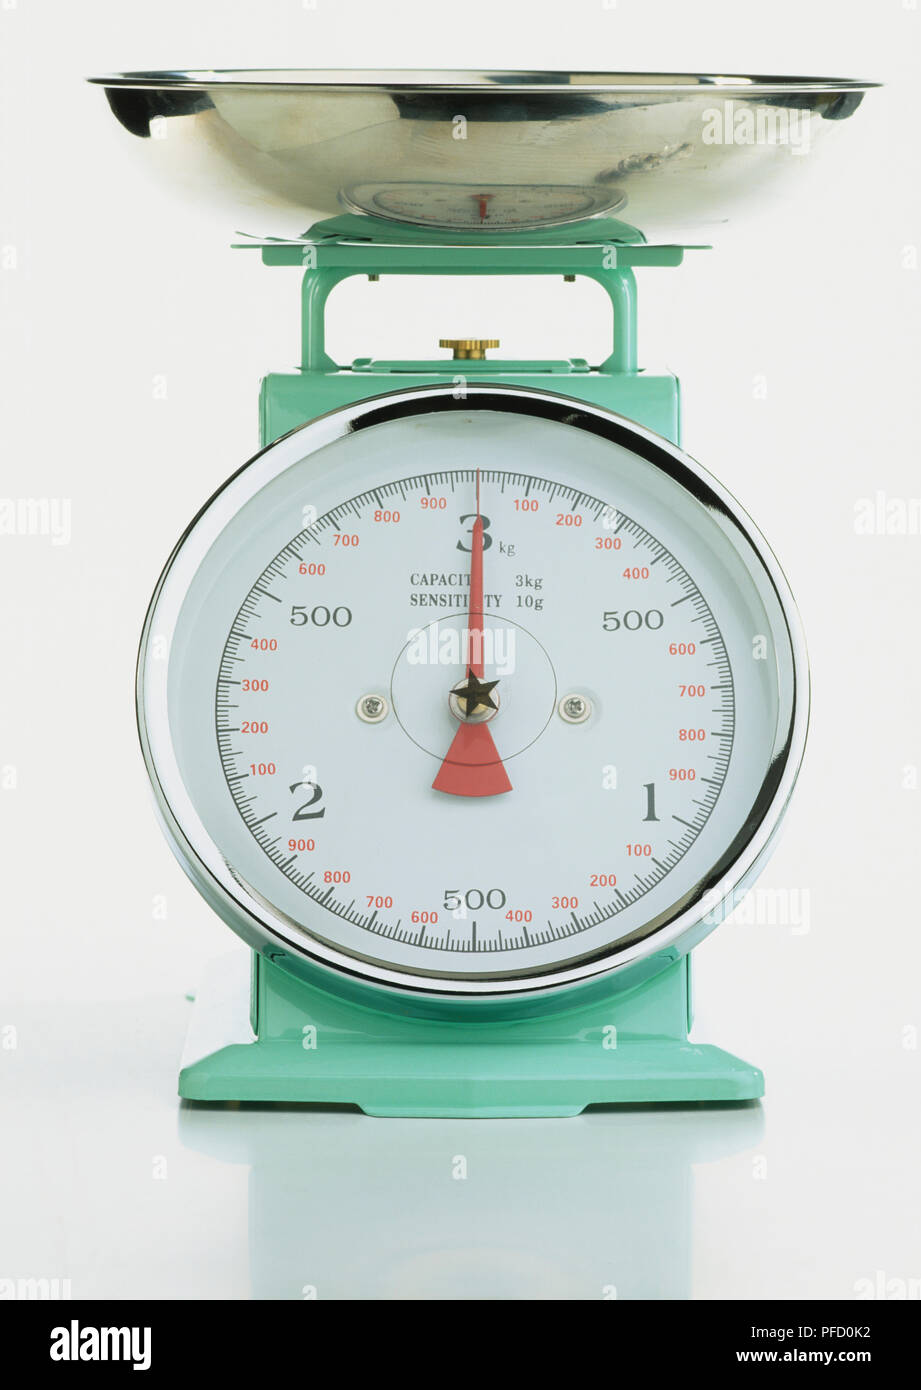 Mechanical Weighing Scales Stock Photos & Mechanical Weighing Scales ...